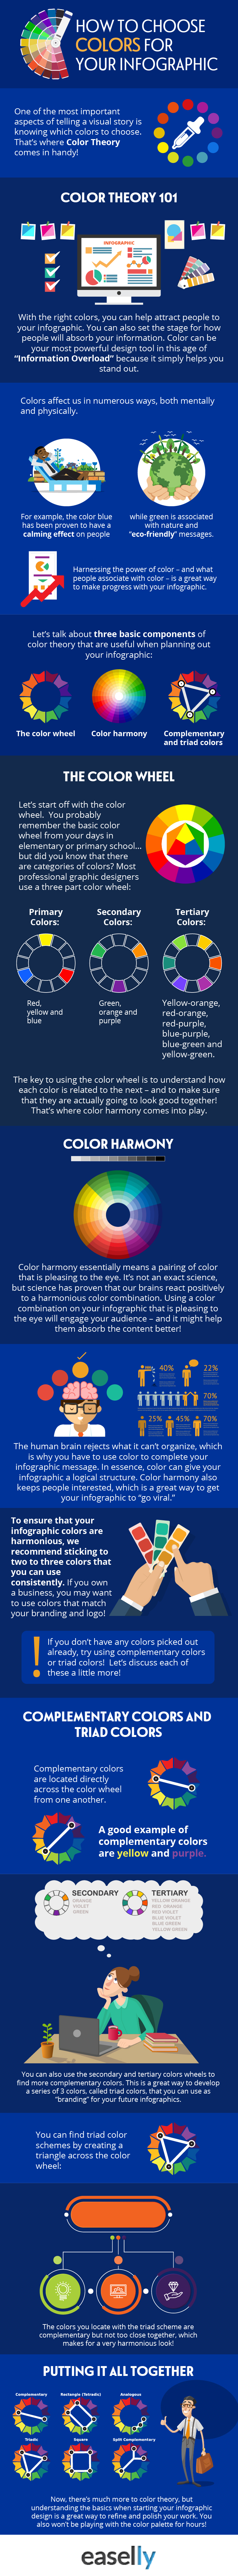 How To Choose Infographic Colors With Color Theory